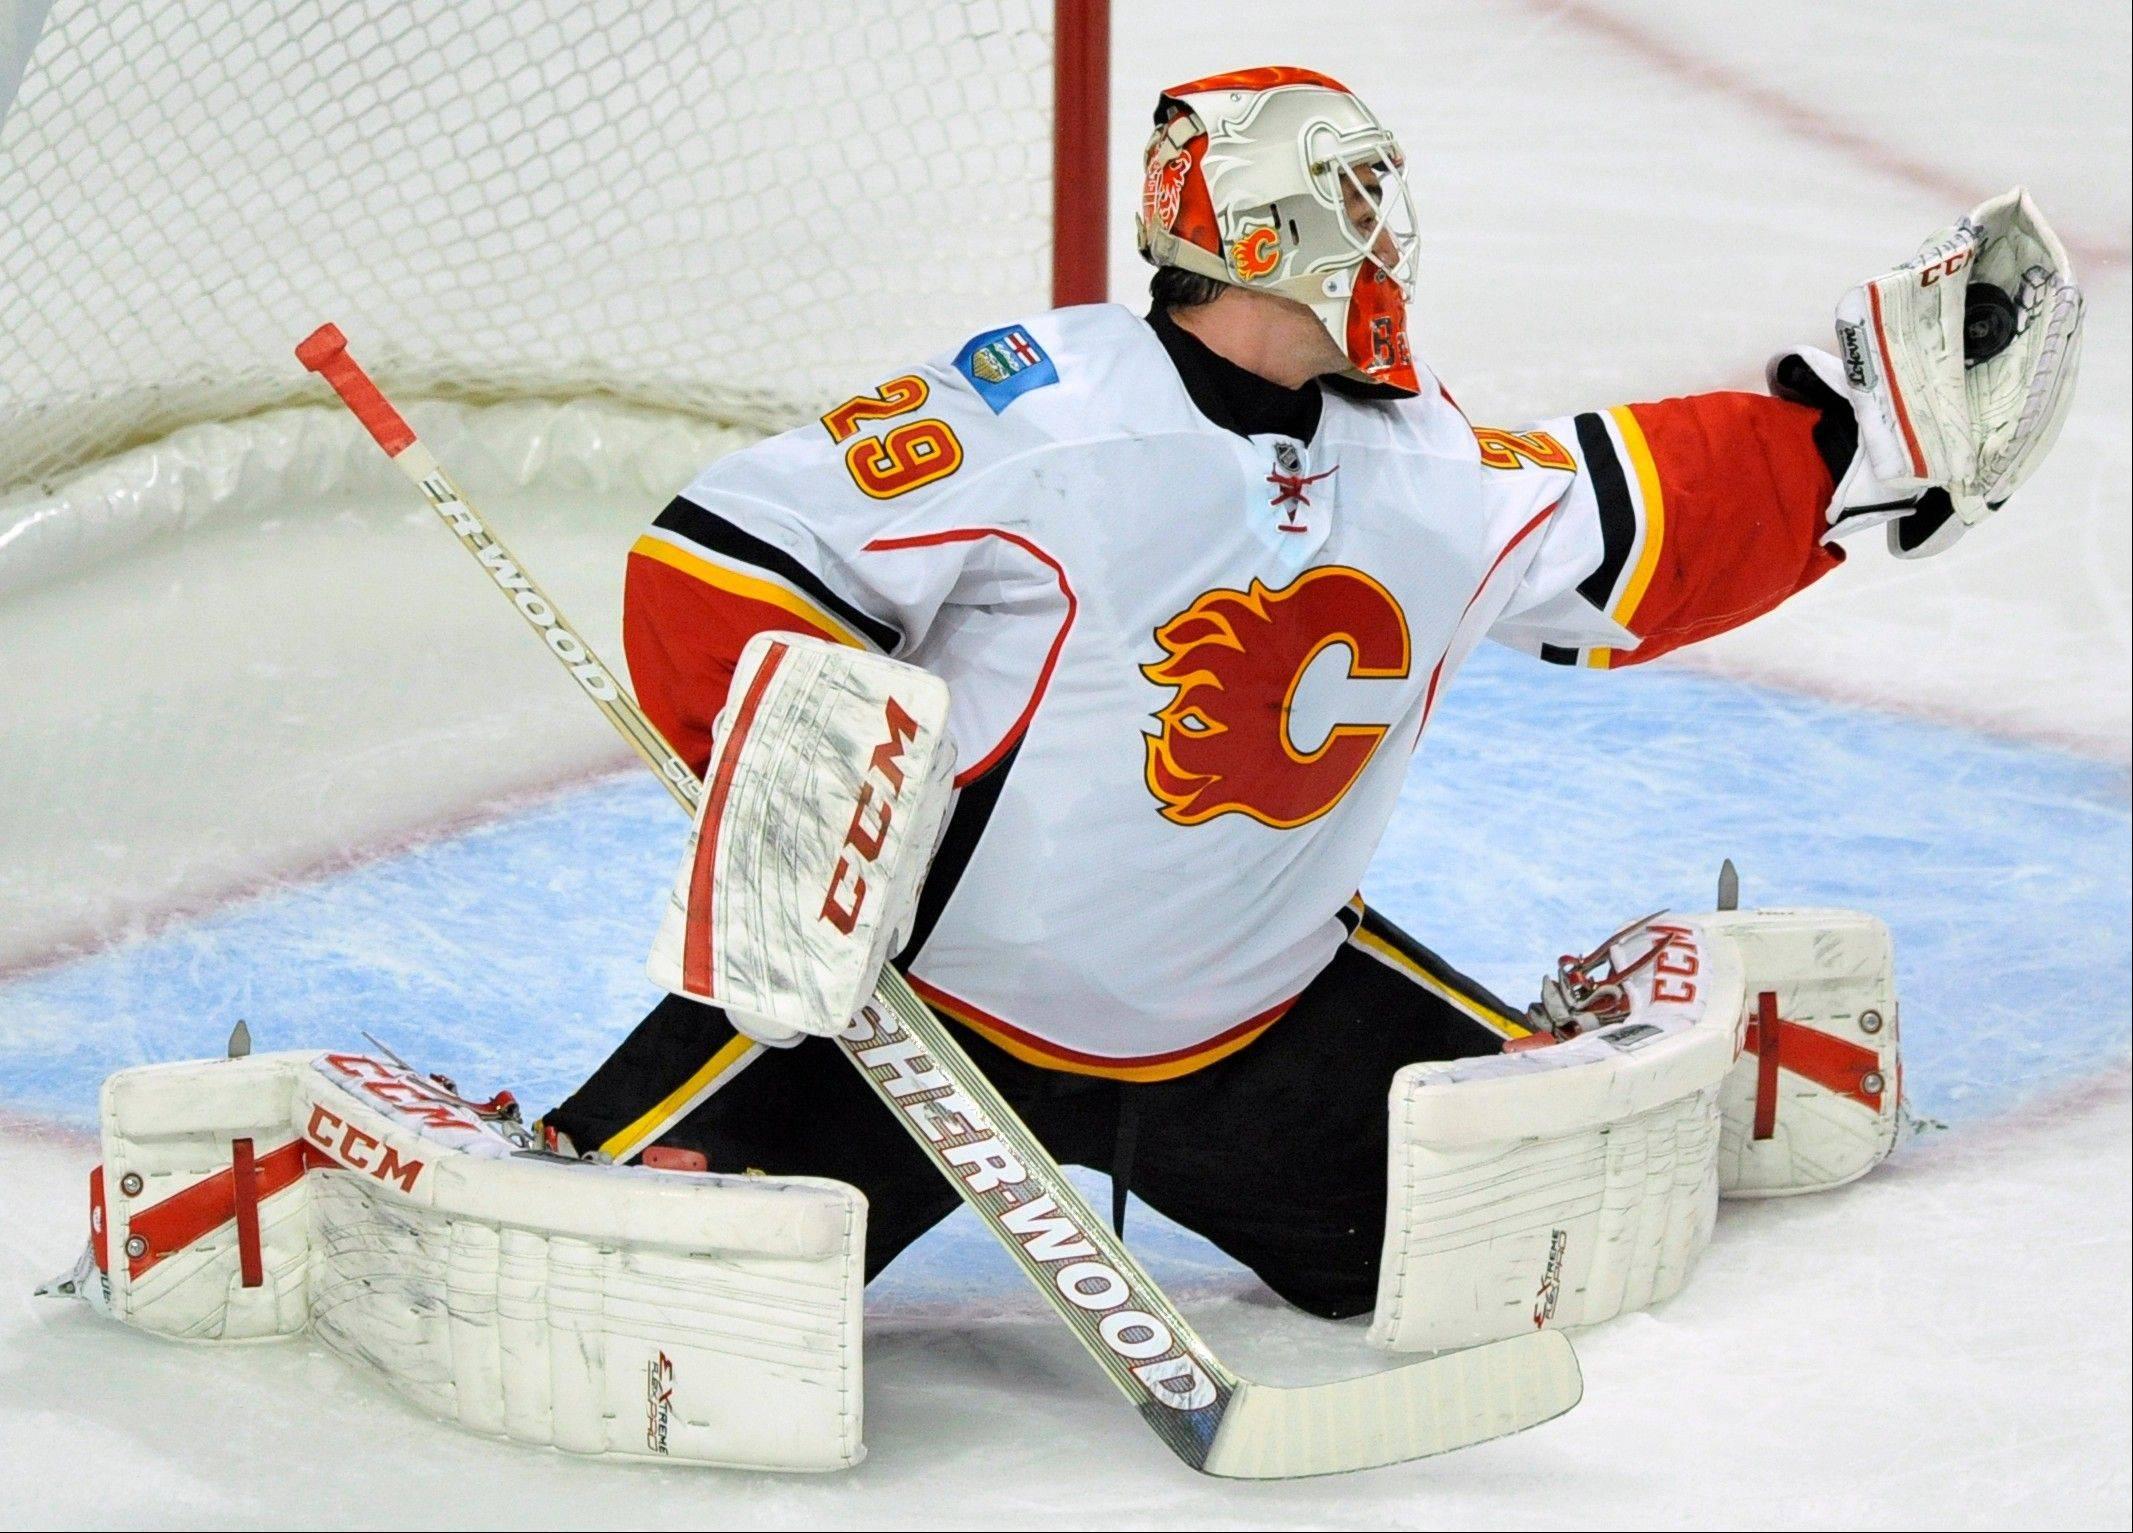 Calgary Flames goalie Reto Berra of Switzerland, makes a save during the first period of an NHL hockey game against the Chicago Blackhawks in Chicago, Sunday, Nov. 3, 2013.